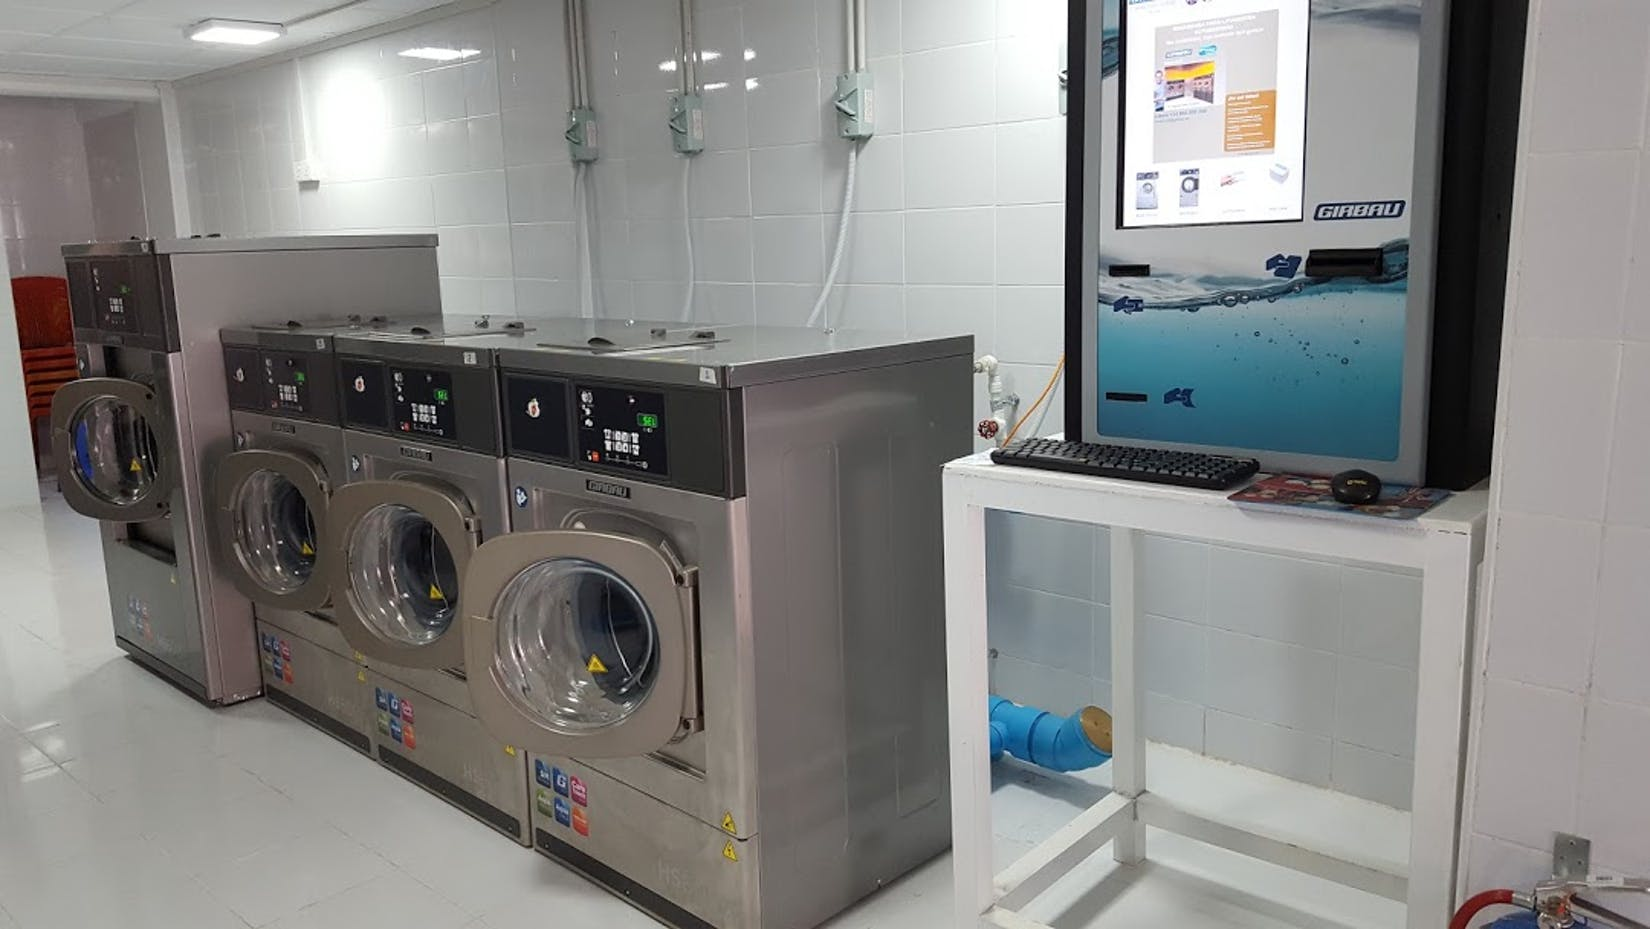 WASH'N DRY SELF SERVICE LAUNDRY | Beauty